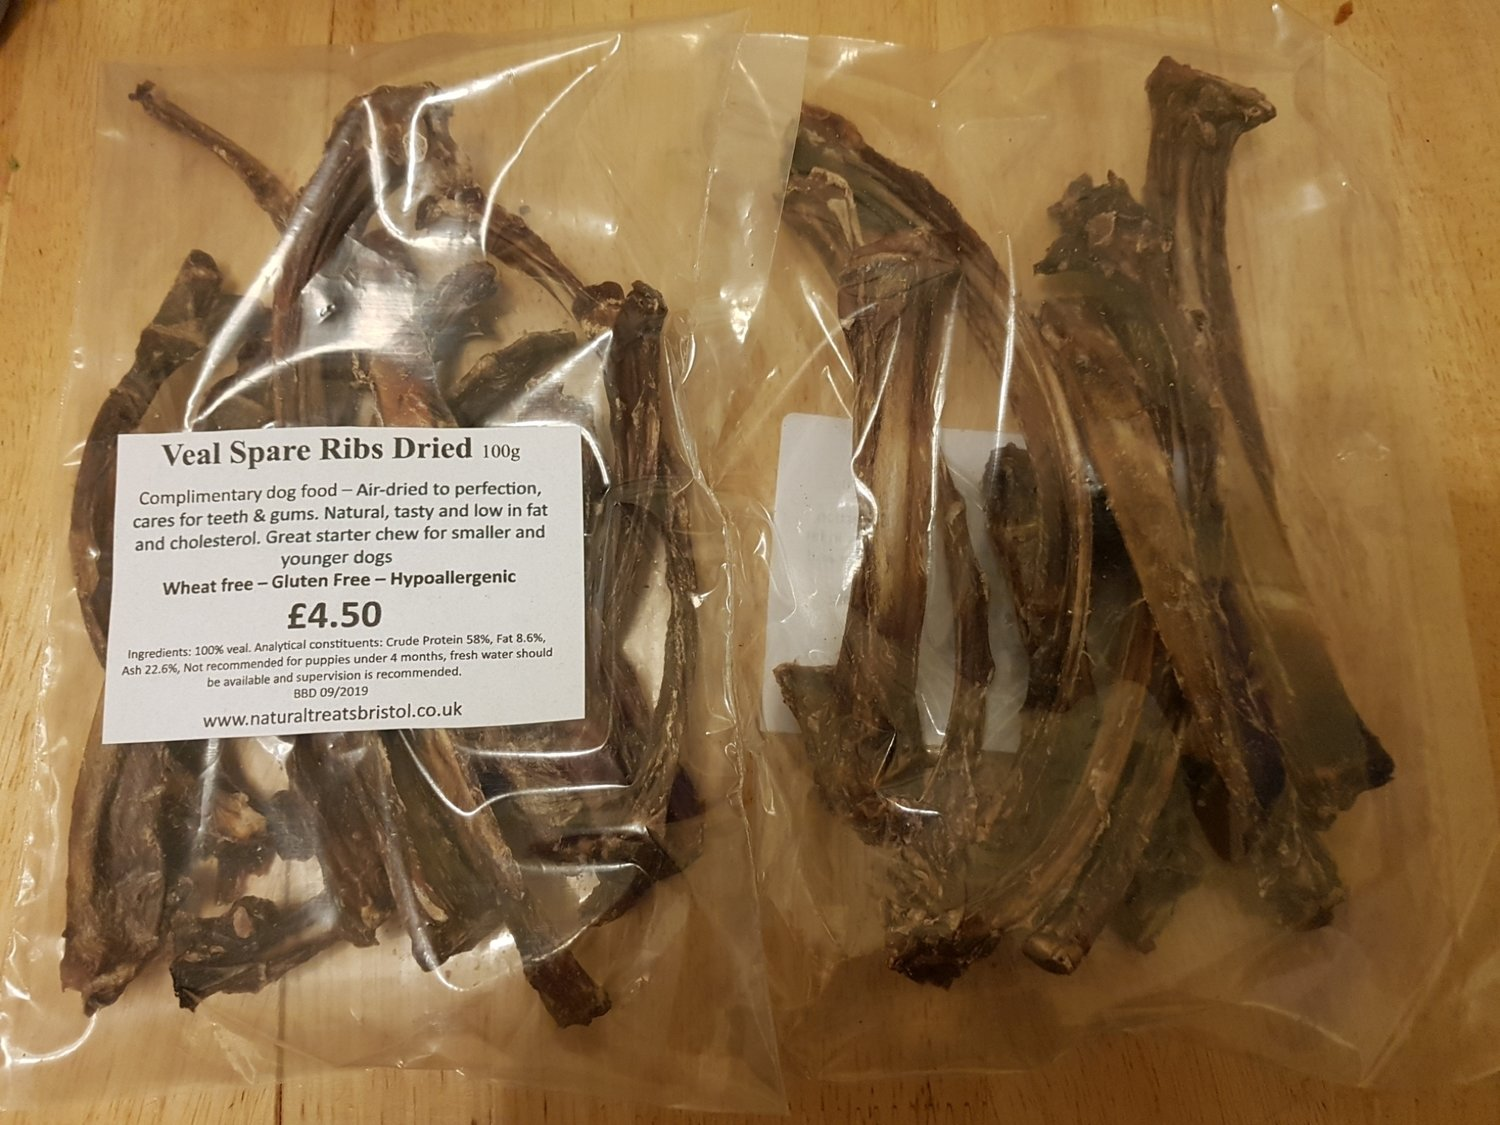 Veal Spare Ribs Dried 100g